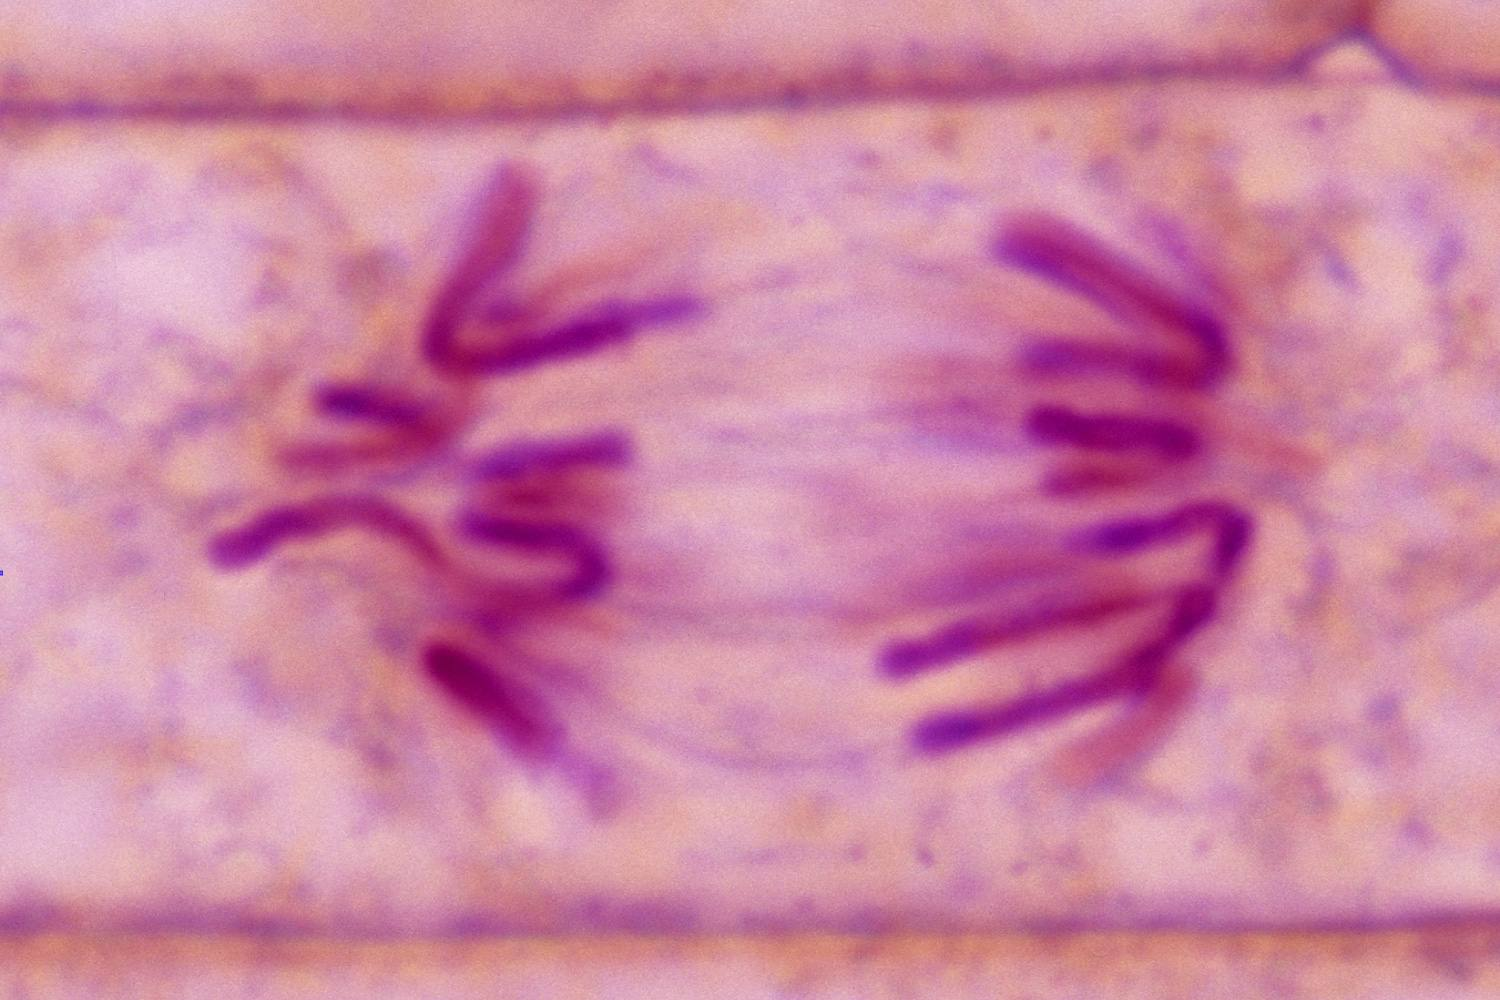 The Stages Of Mitosis And Cell Division Simple Animal Diagram Labeled 2 This Onion Root Tip Plant Is In Anaphase Replicated Chromosomes Are Moving To Opposite Ends Spindle Fibers Microtubules